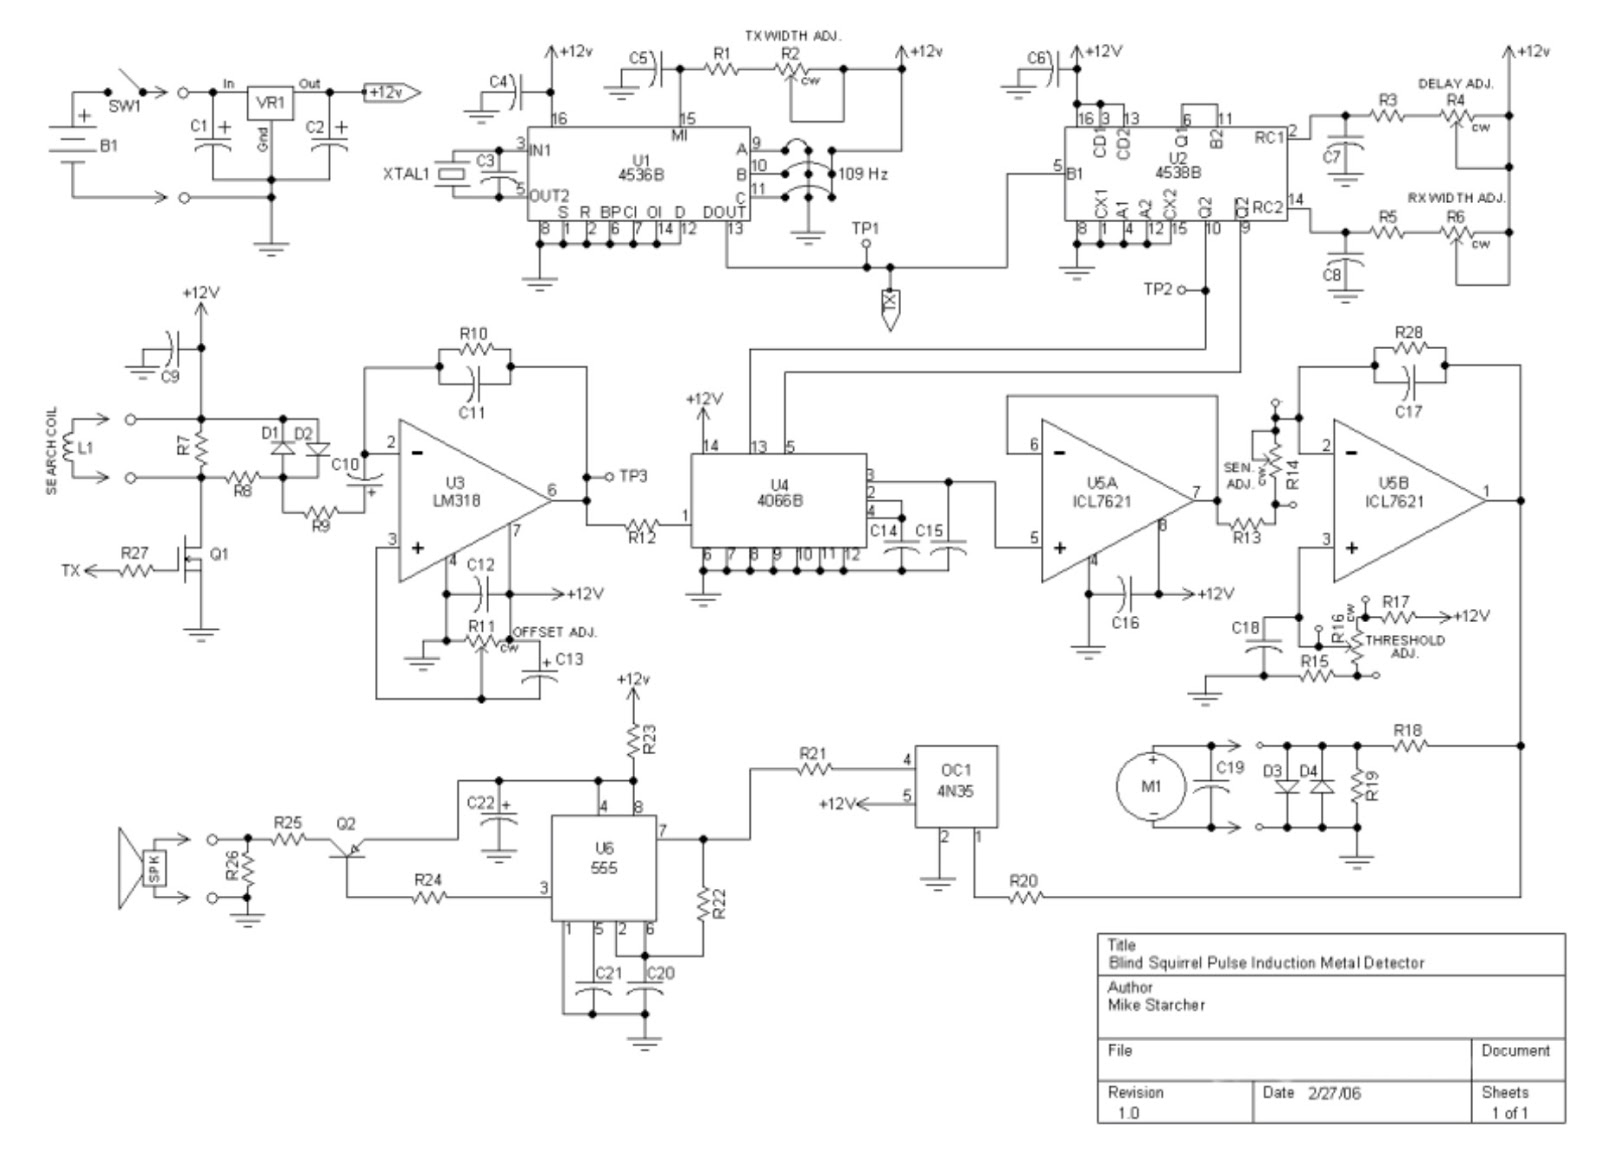 The Blind Squirrel Pulse Induction Metal Detector Circuit Diagram Of Pi Schematic